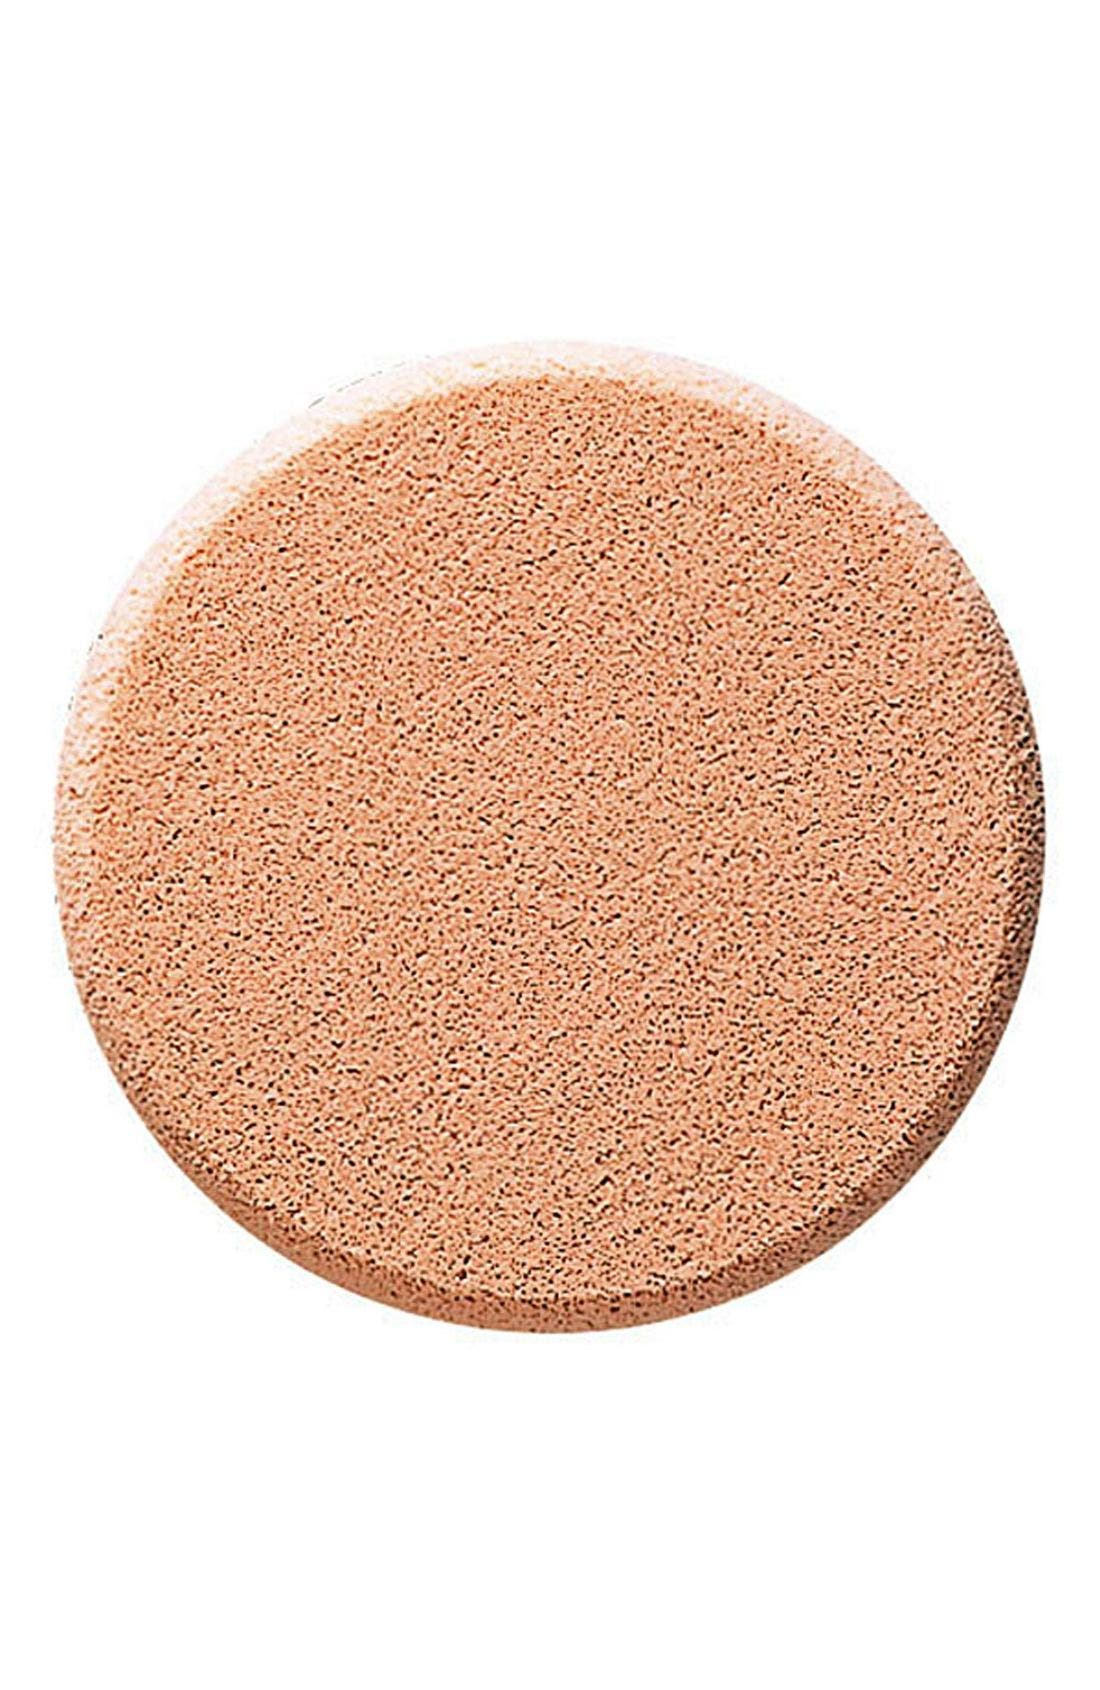 'The Makeup' Sponge Puff for Foundation,                             Main thumbnail 1, color,                             000